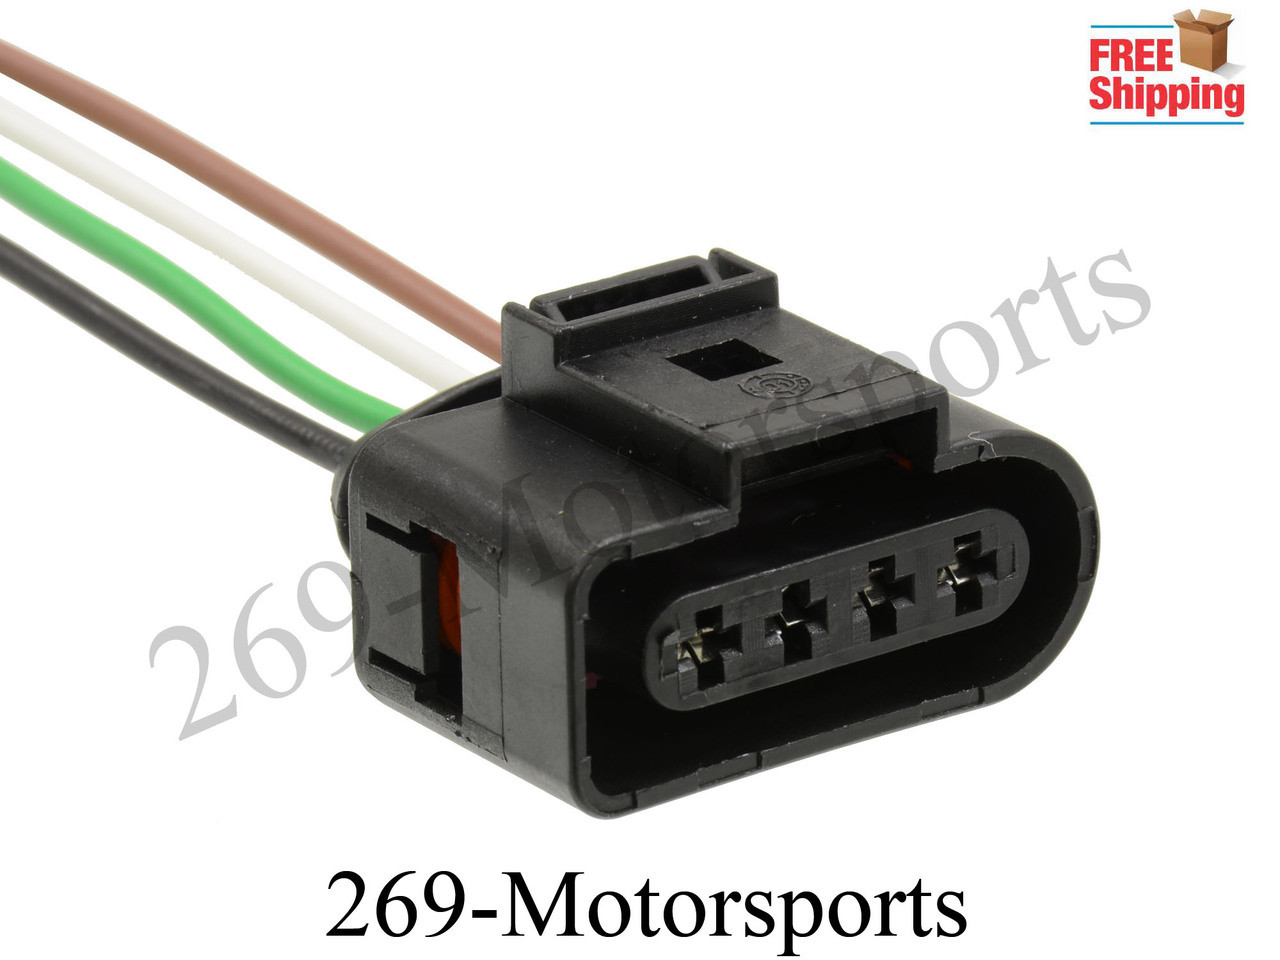 hight resolution of 4 ignition coil connector repair kit harness wiring fits vw audi jetta passat vw